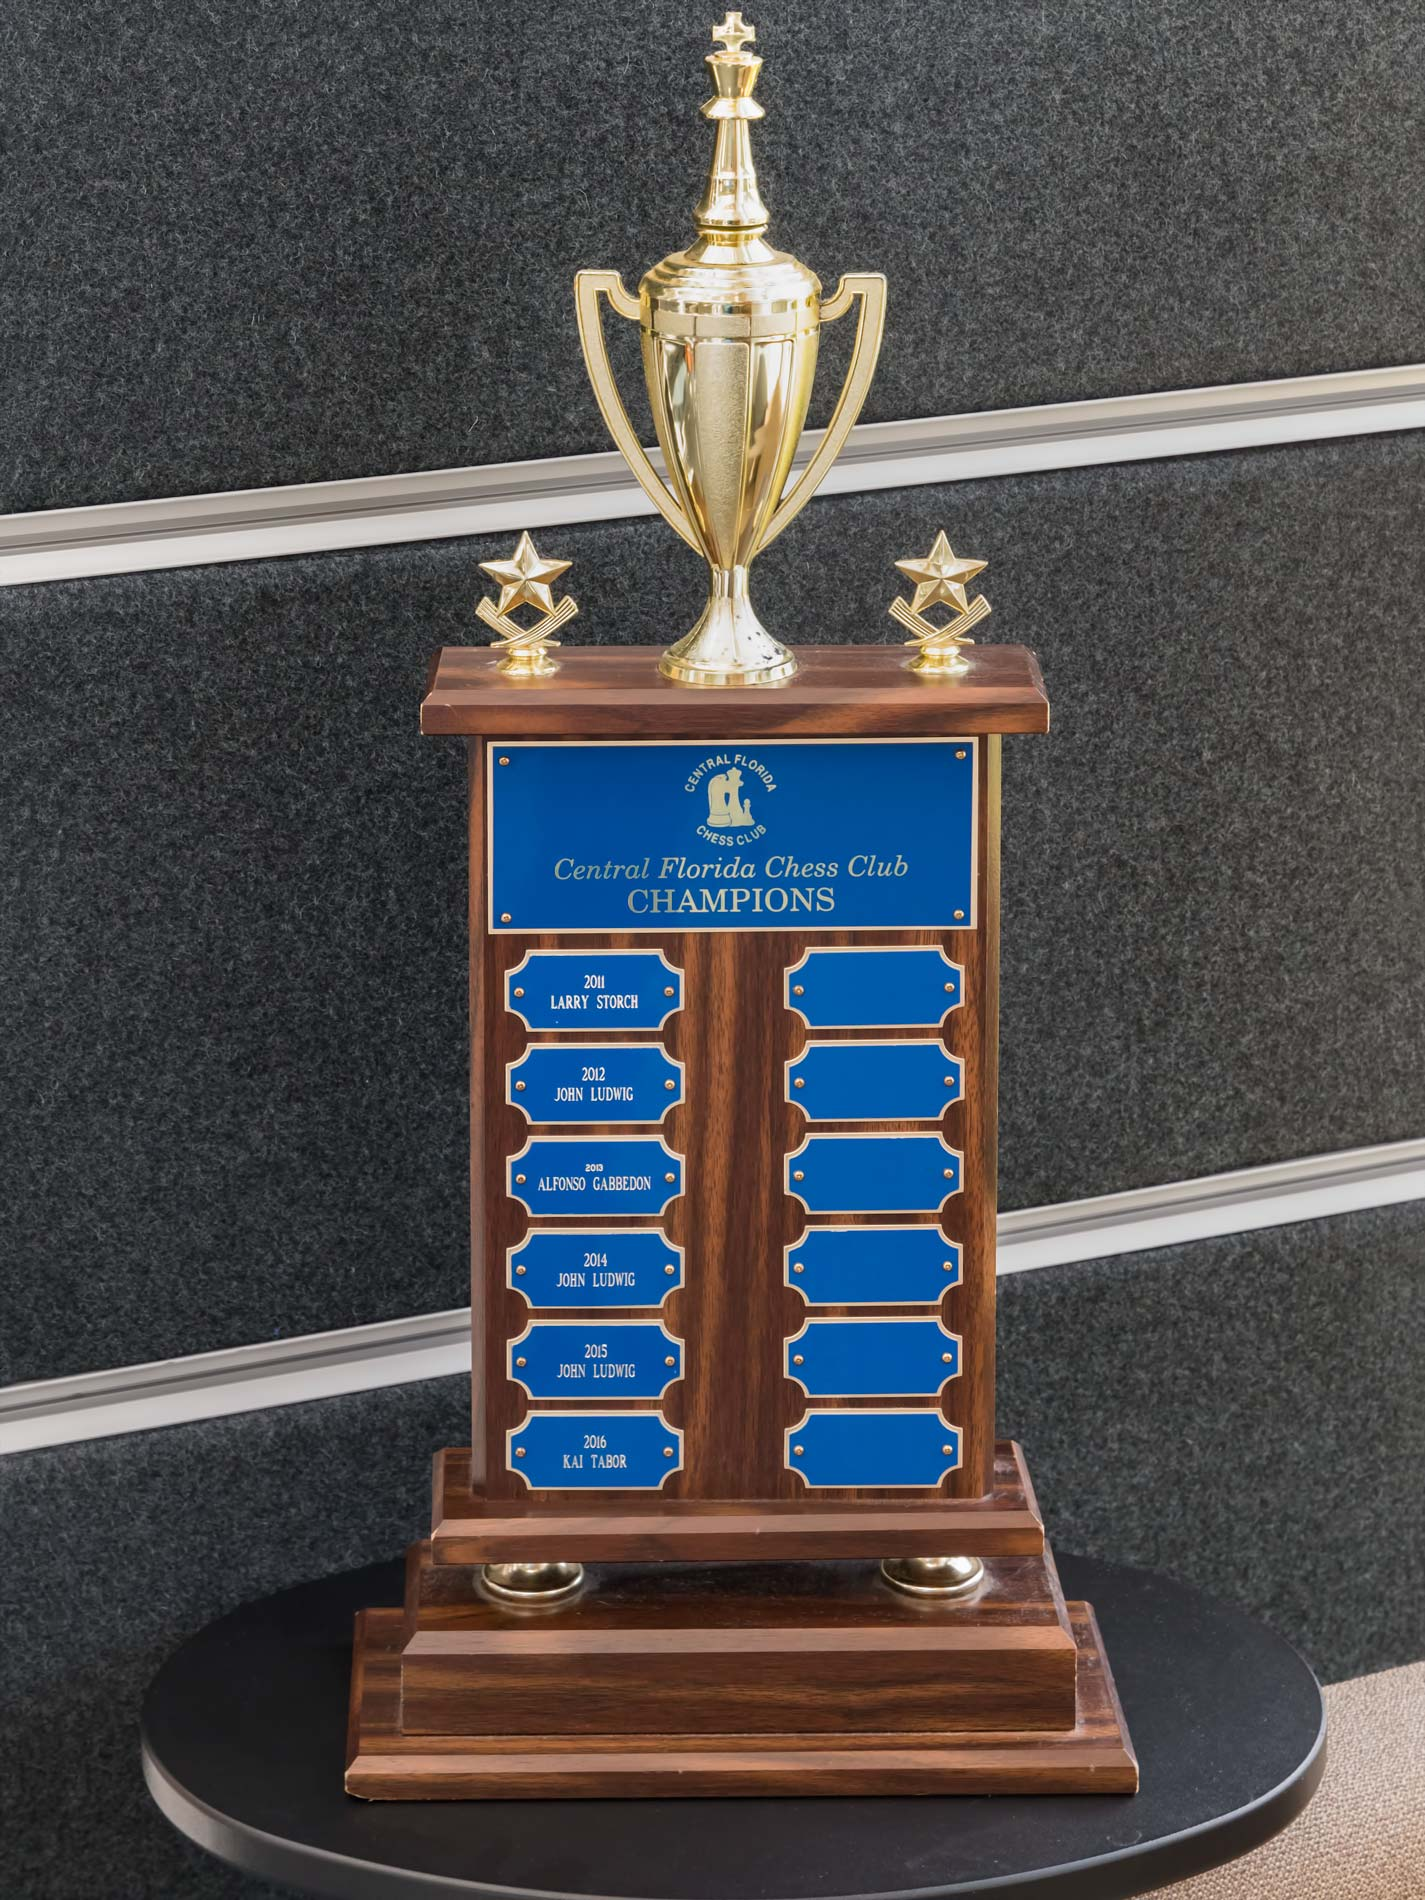 CFCC Club Championship Trophy designating the most recent club champions.